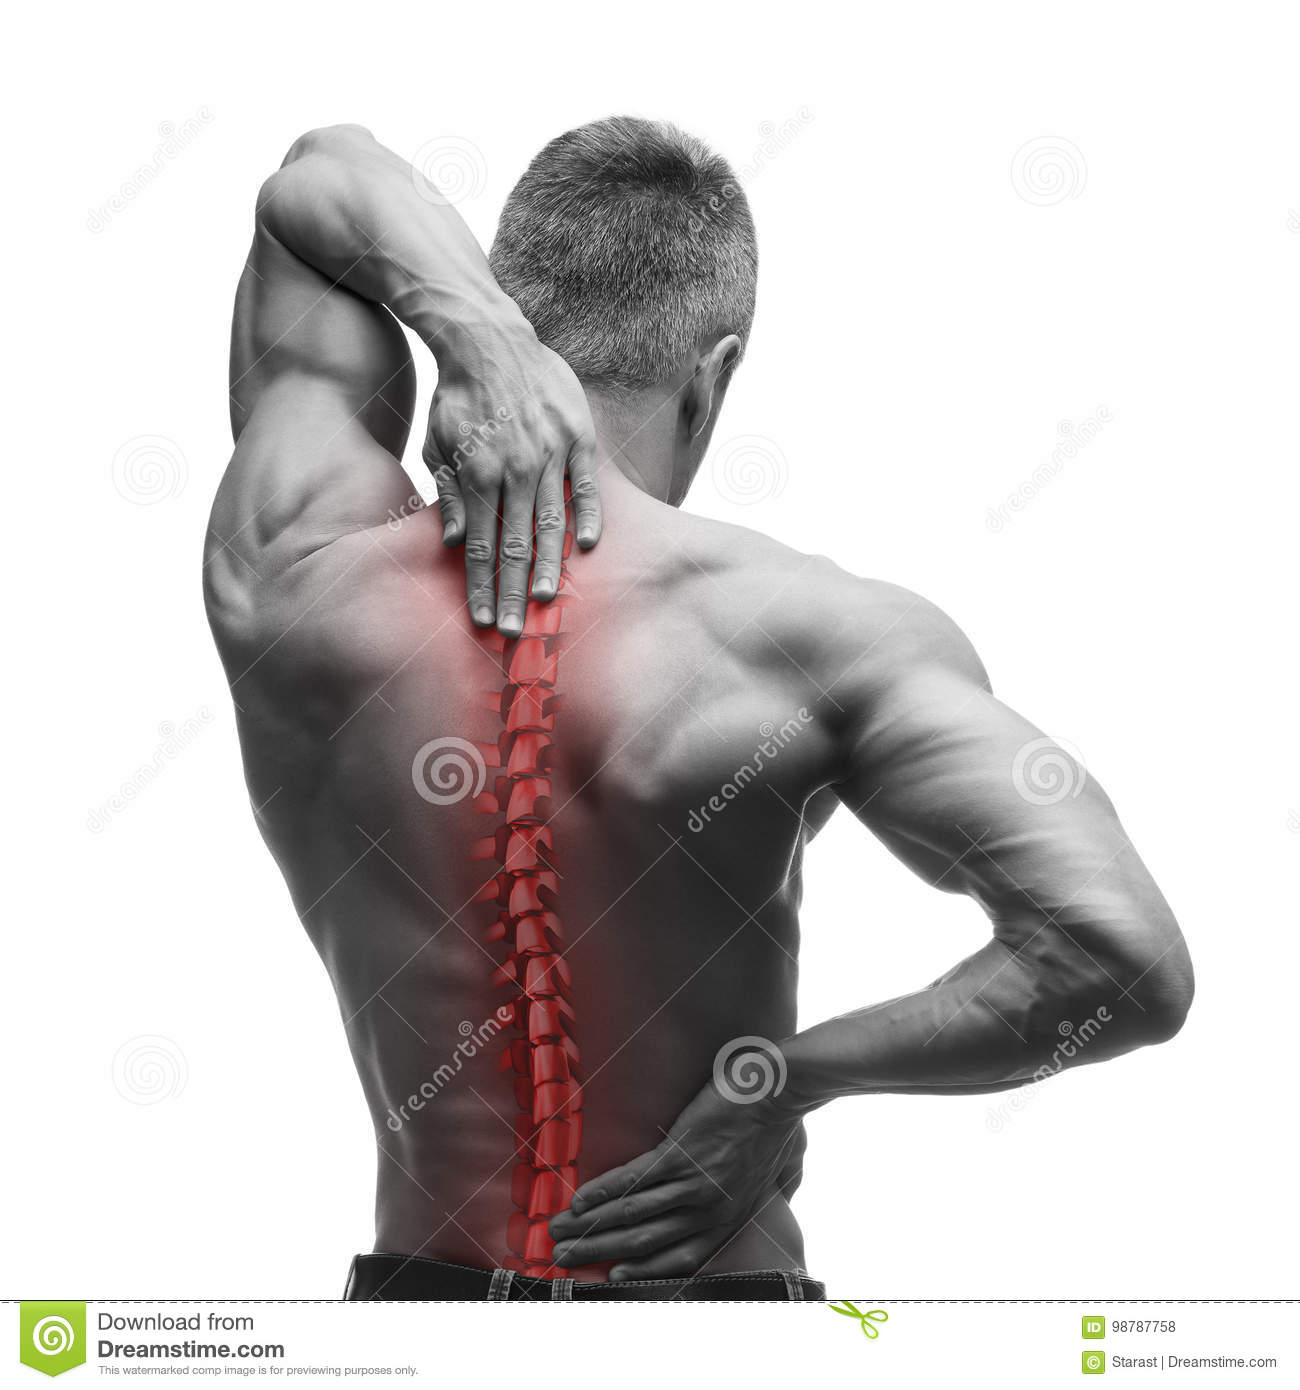 Download Spine Pain, Man With Backache And Ache In The Neck, Black And White Photo With Red Backbone Stock Photo - Image of cramp, bones: 98787758